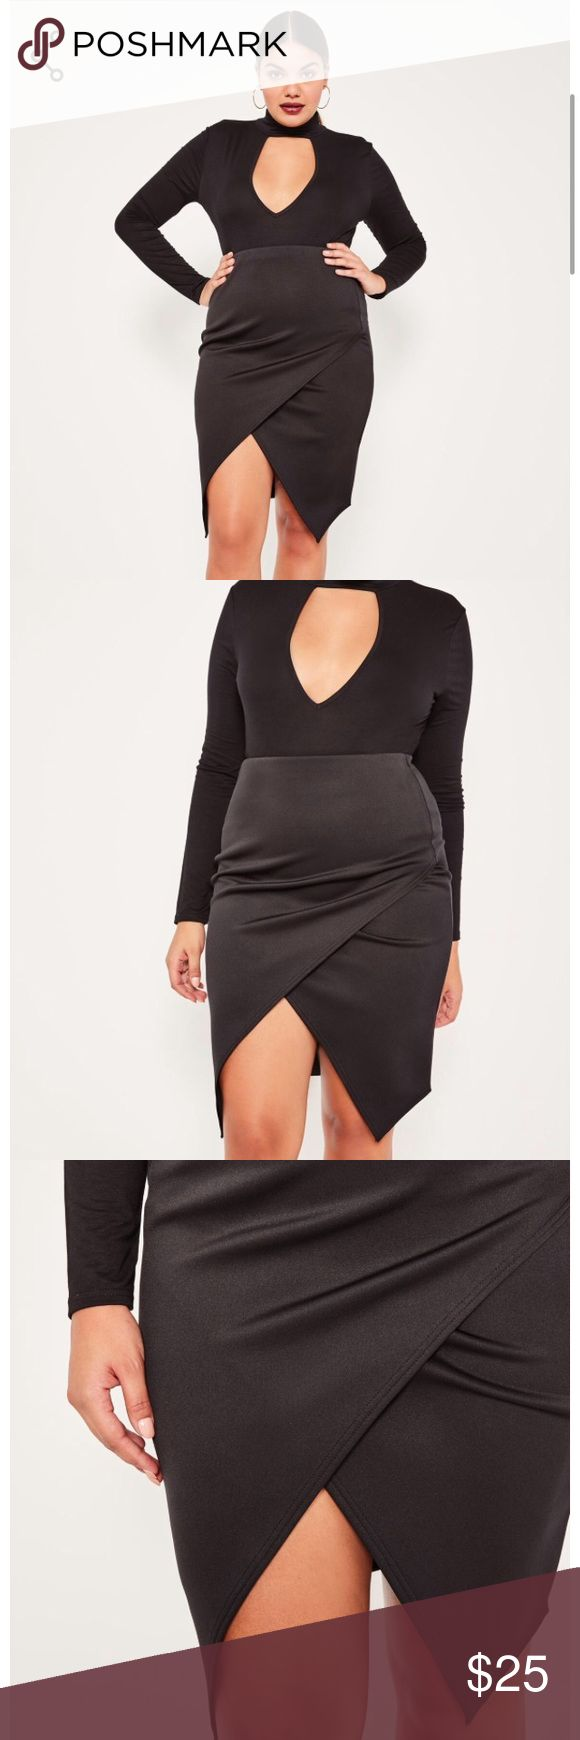 Asymmetric black midi skirt⚡️price firm⚡️ Beautiful brand new with tags us size 20 Asymmetric black midi skirt. Feel free to ask any questions 😊 ASOS Curve Skirts Midi